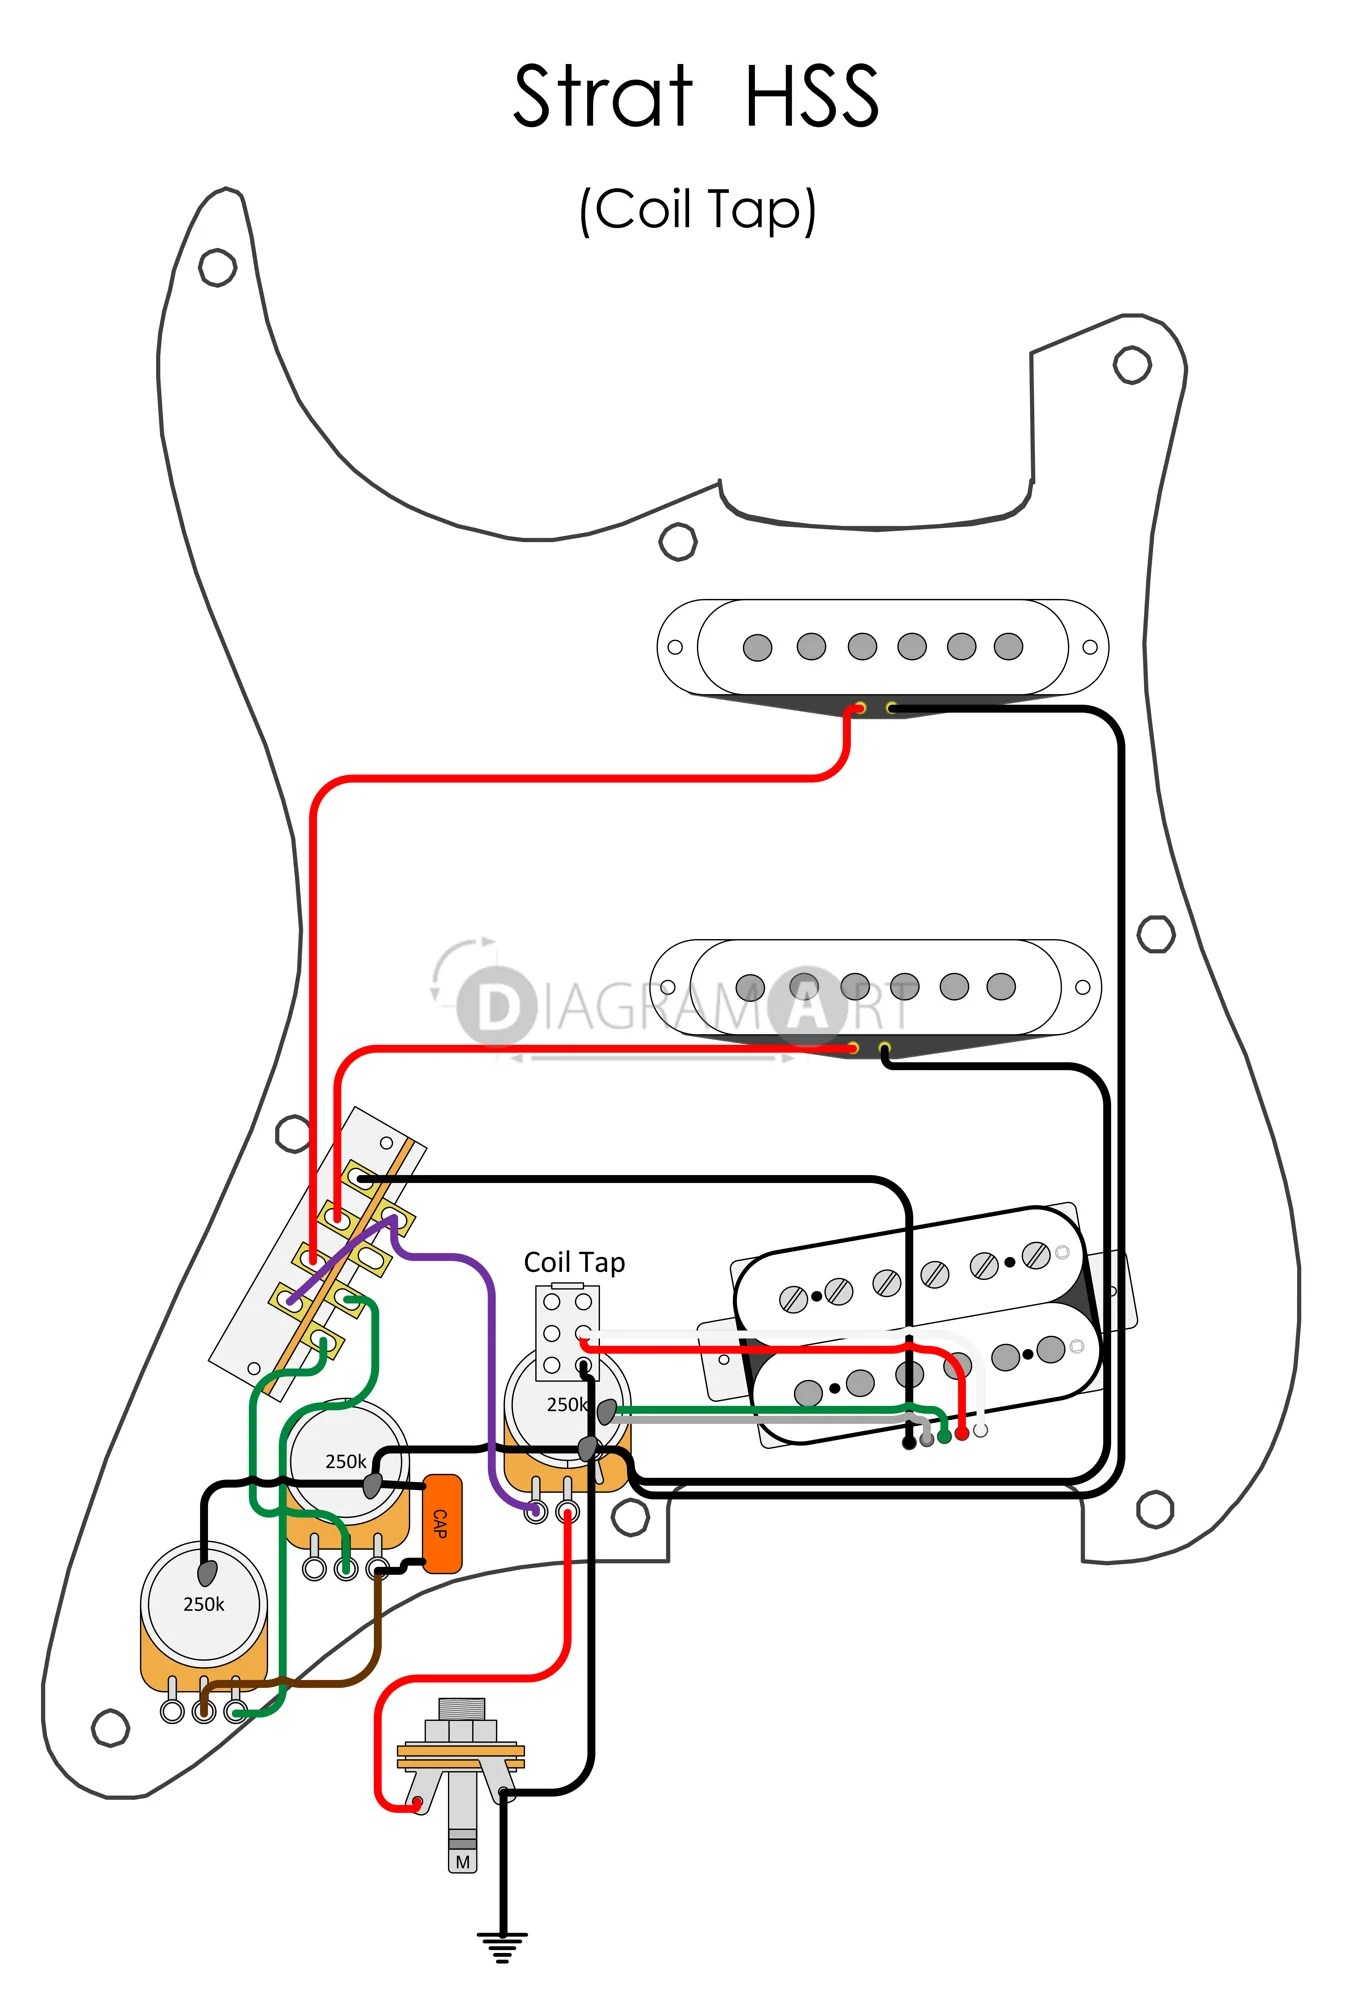 hight resolution of strat hss guitar wiring diagram schema diagram database electric guitar wiring strat hss coil tap